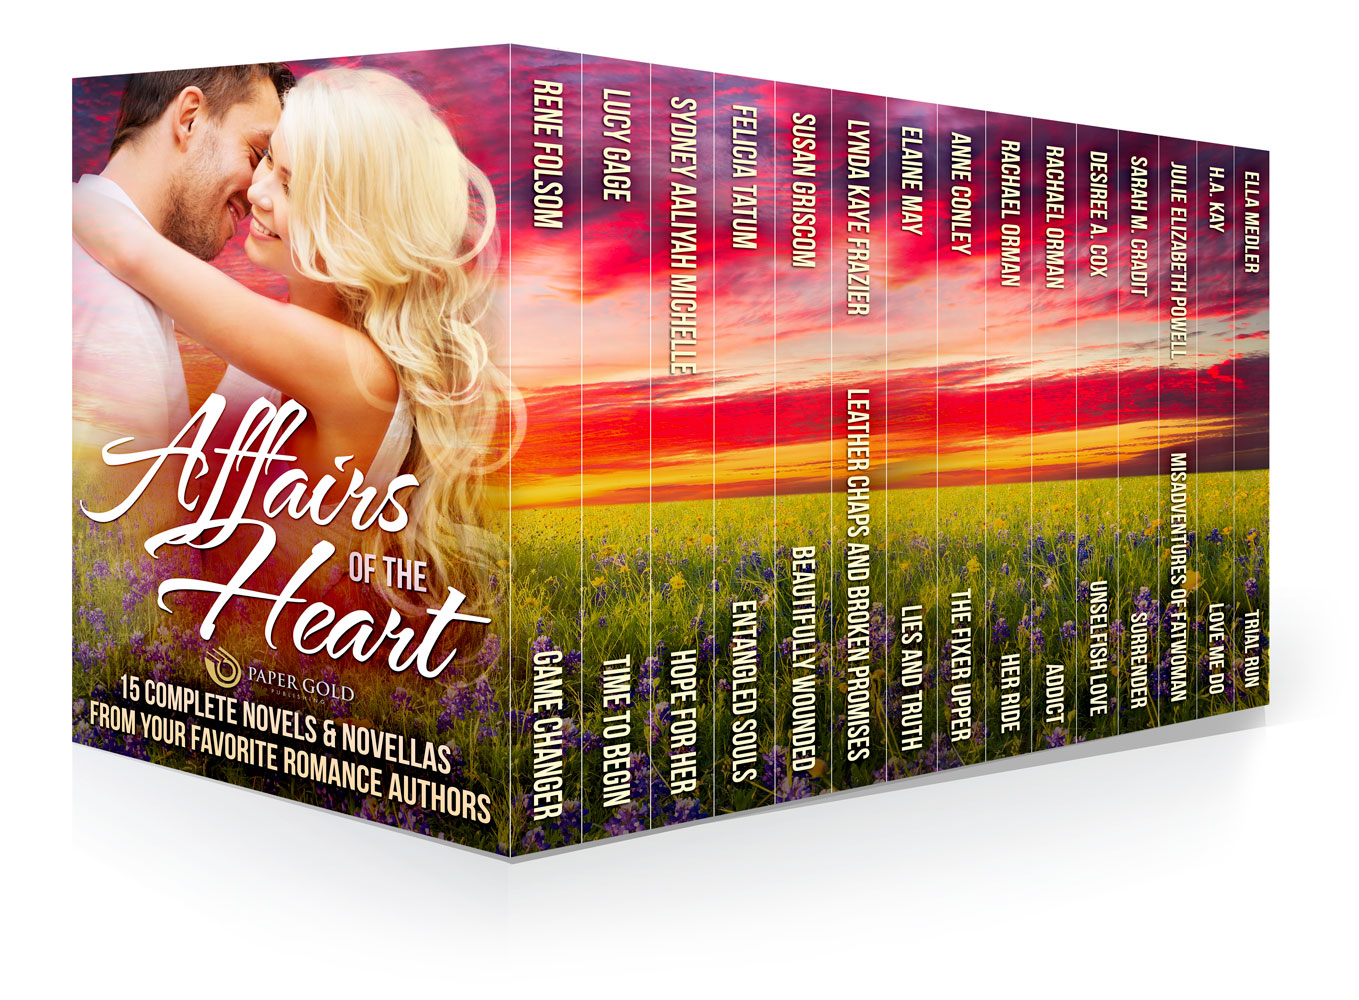 Affairs of the Heart: 15 Complete Novels & Novellas from your Favorite Romance Authors